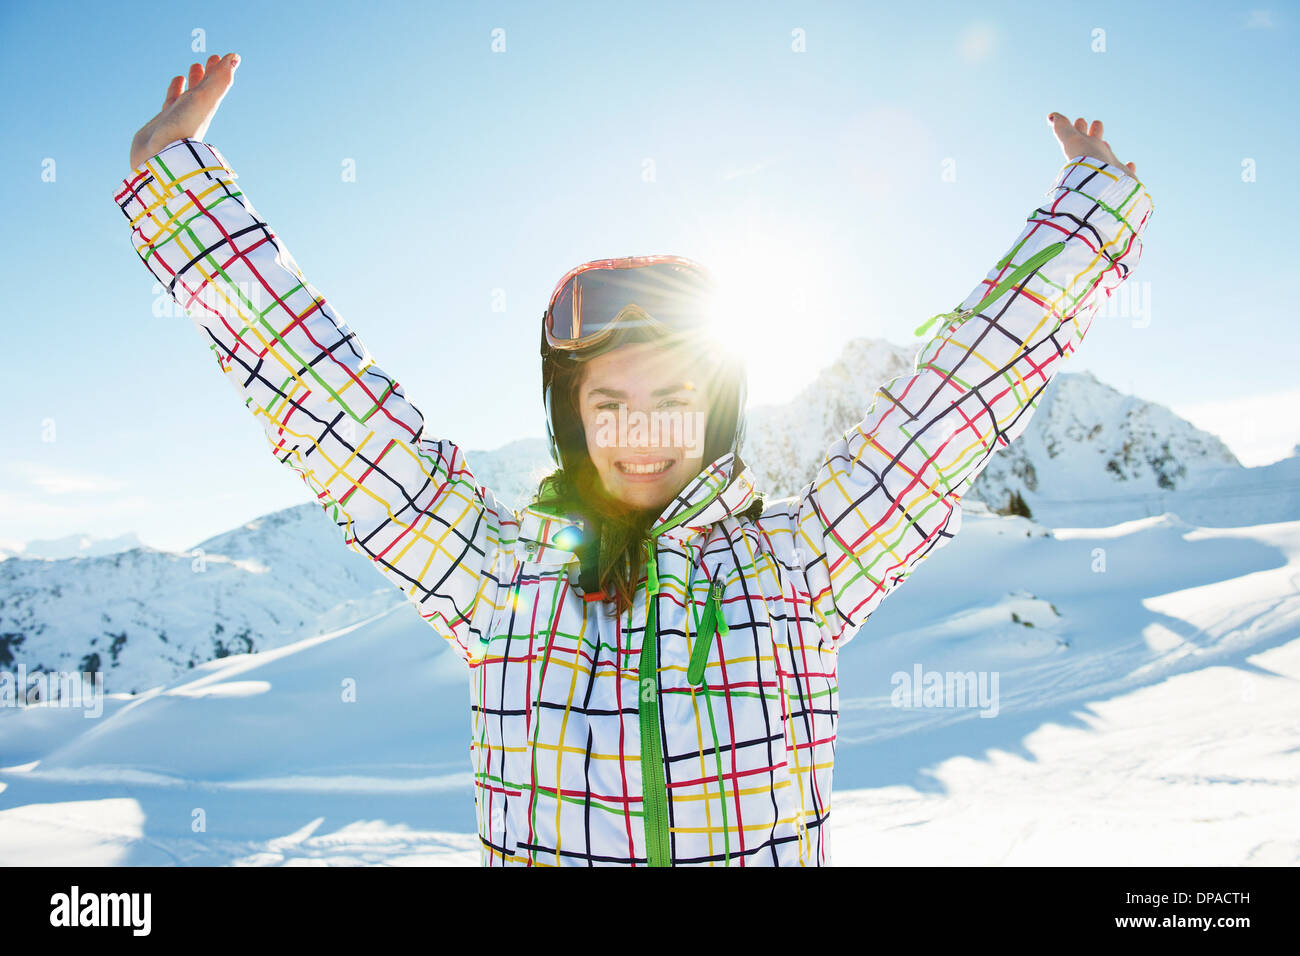 Portrait of teenage girl skier with arms outstretched, Les Arcs, Haute-Savoie, France - Stock Image